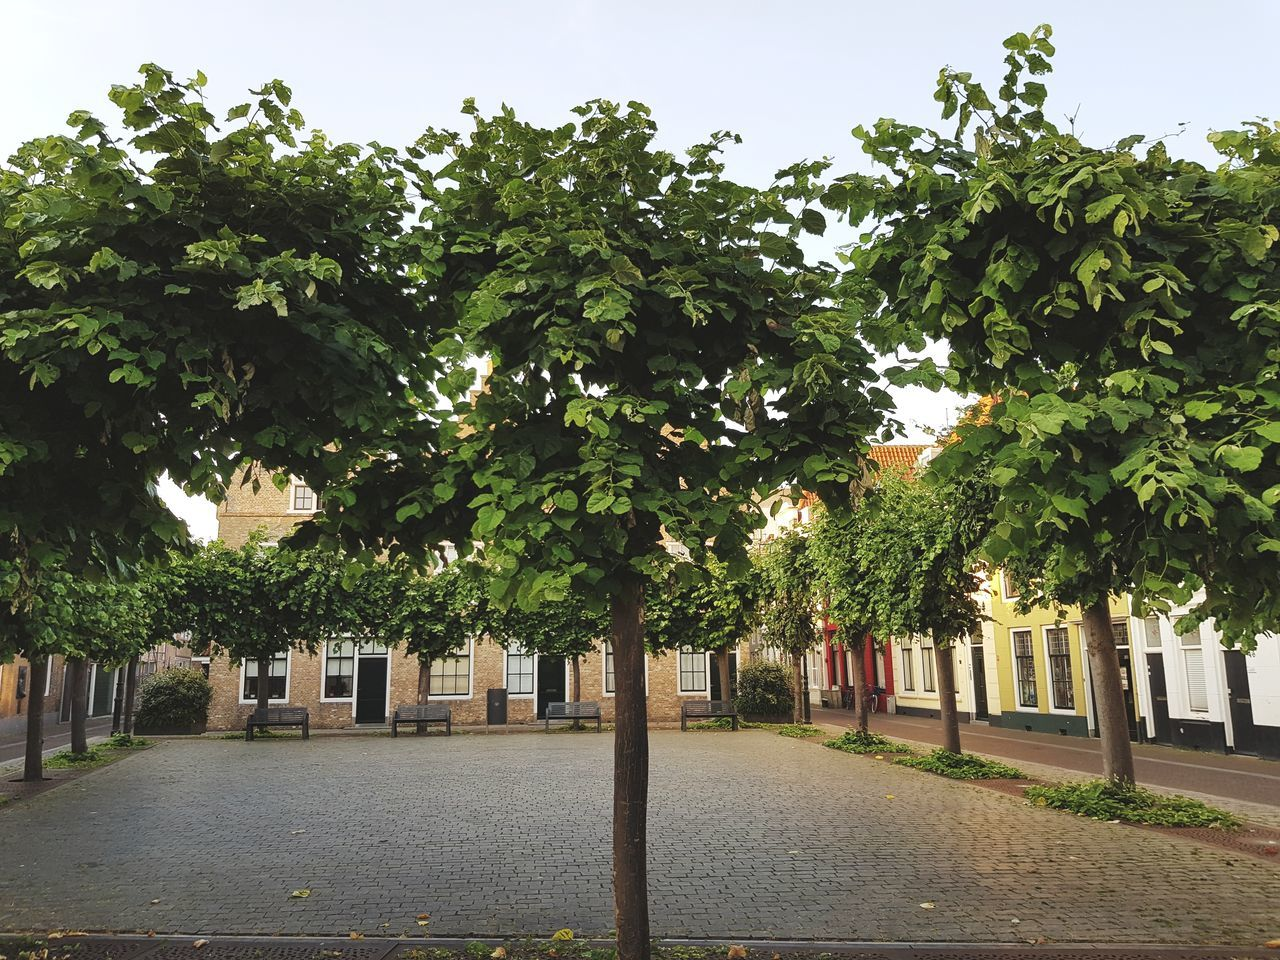 Tree Outdoors No People Building Exterior Architecture Taking Photos Taking Pictures Eye4photography  City Built Structure Dutch Architecture Dutch Cities Dutchphotographer Travel Destinations Dutch House Trees Tree_collection  Dutch Life Square Cozy Place Brickstones Greenery Exploring New Ground Zen City Street